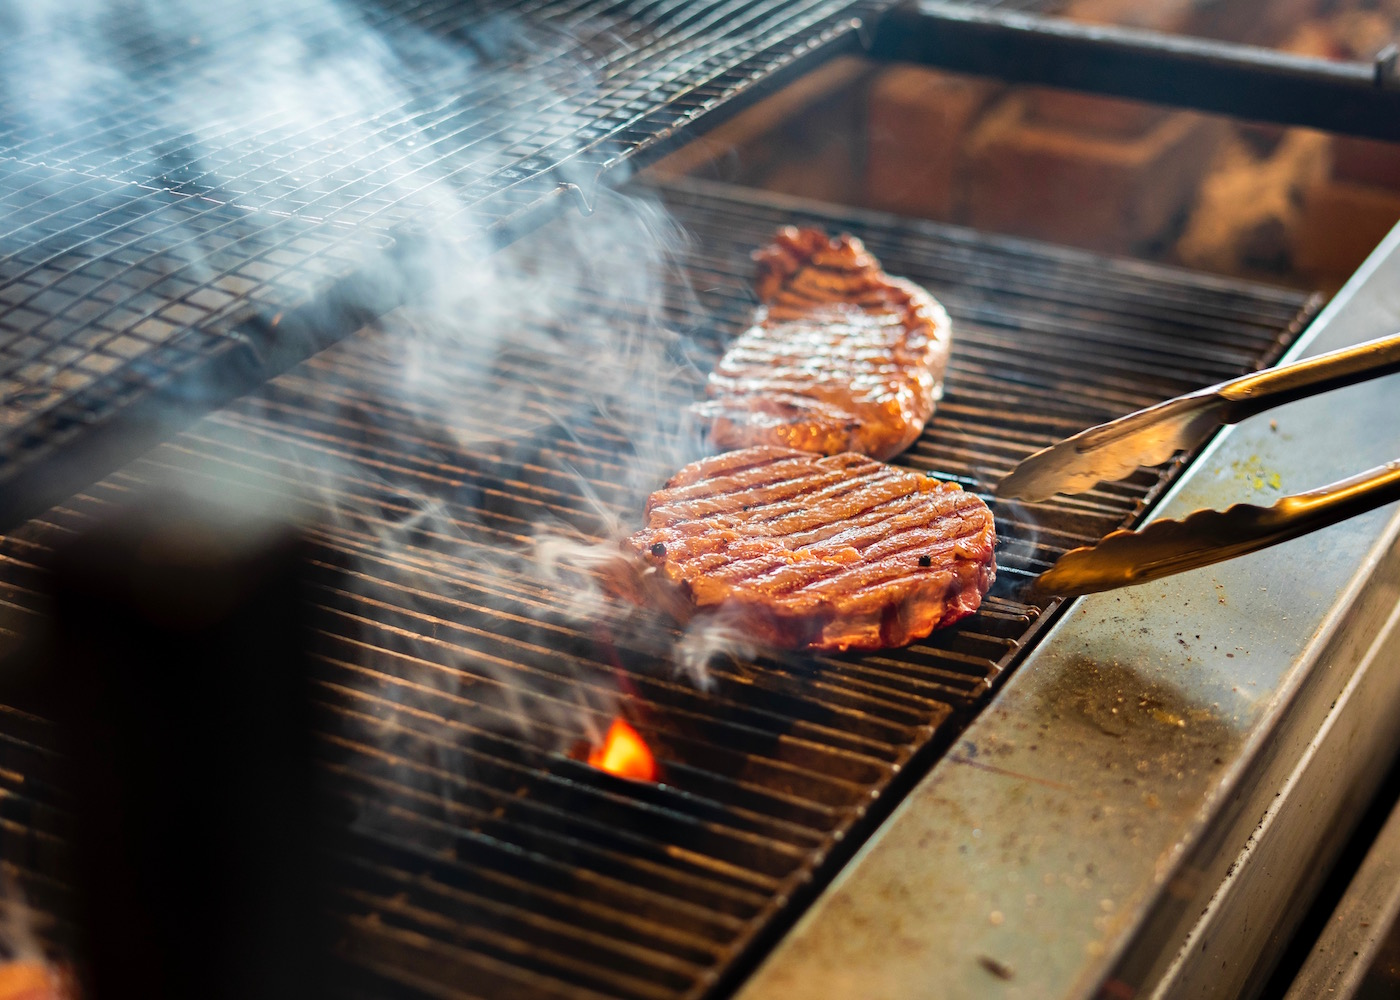 Steak cooking on a grill at SugarSand in Seminyak, Bali, Indonesia